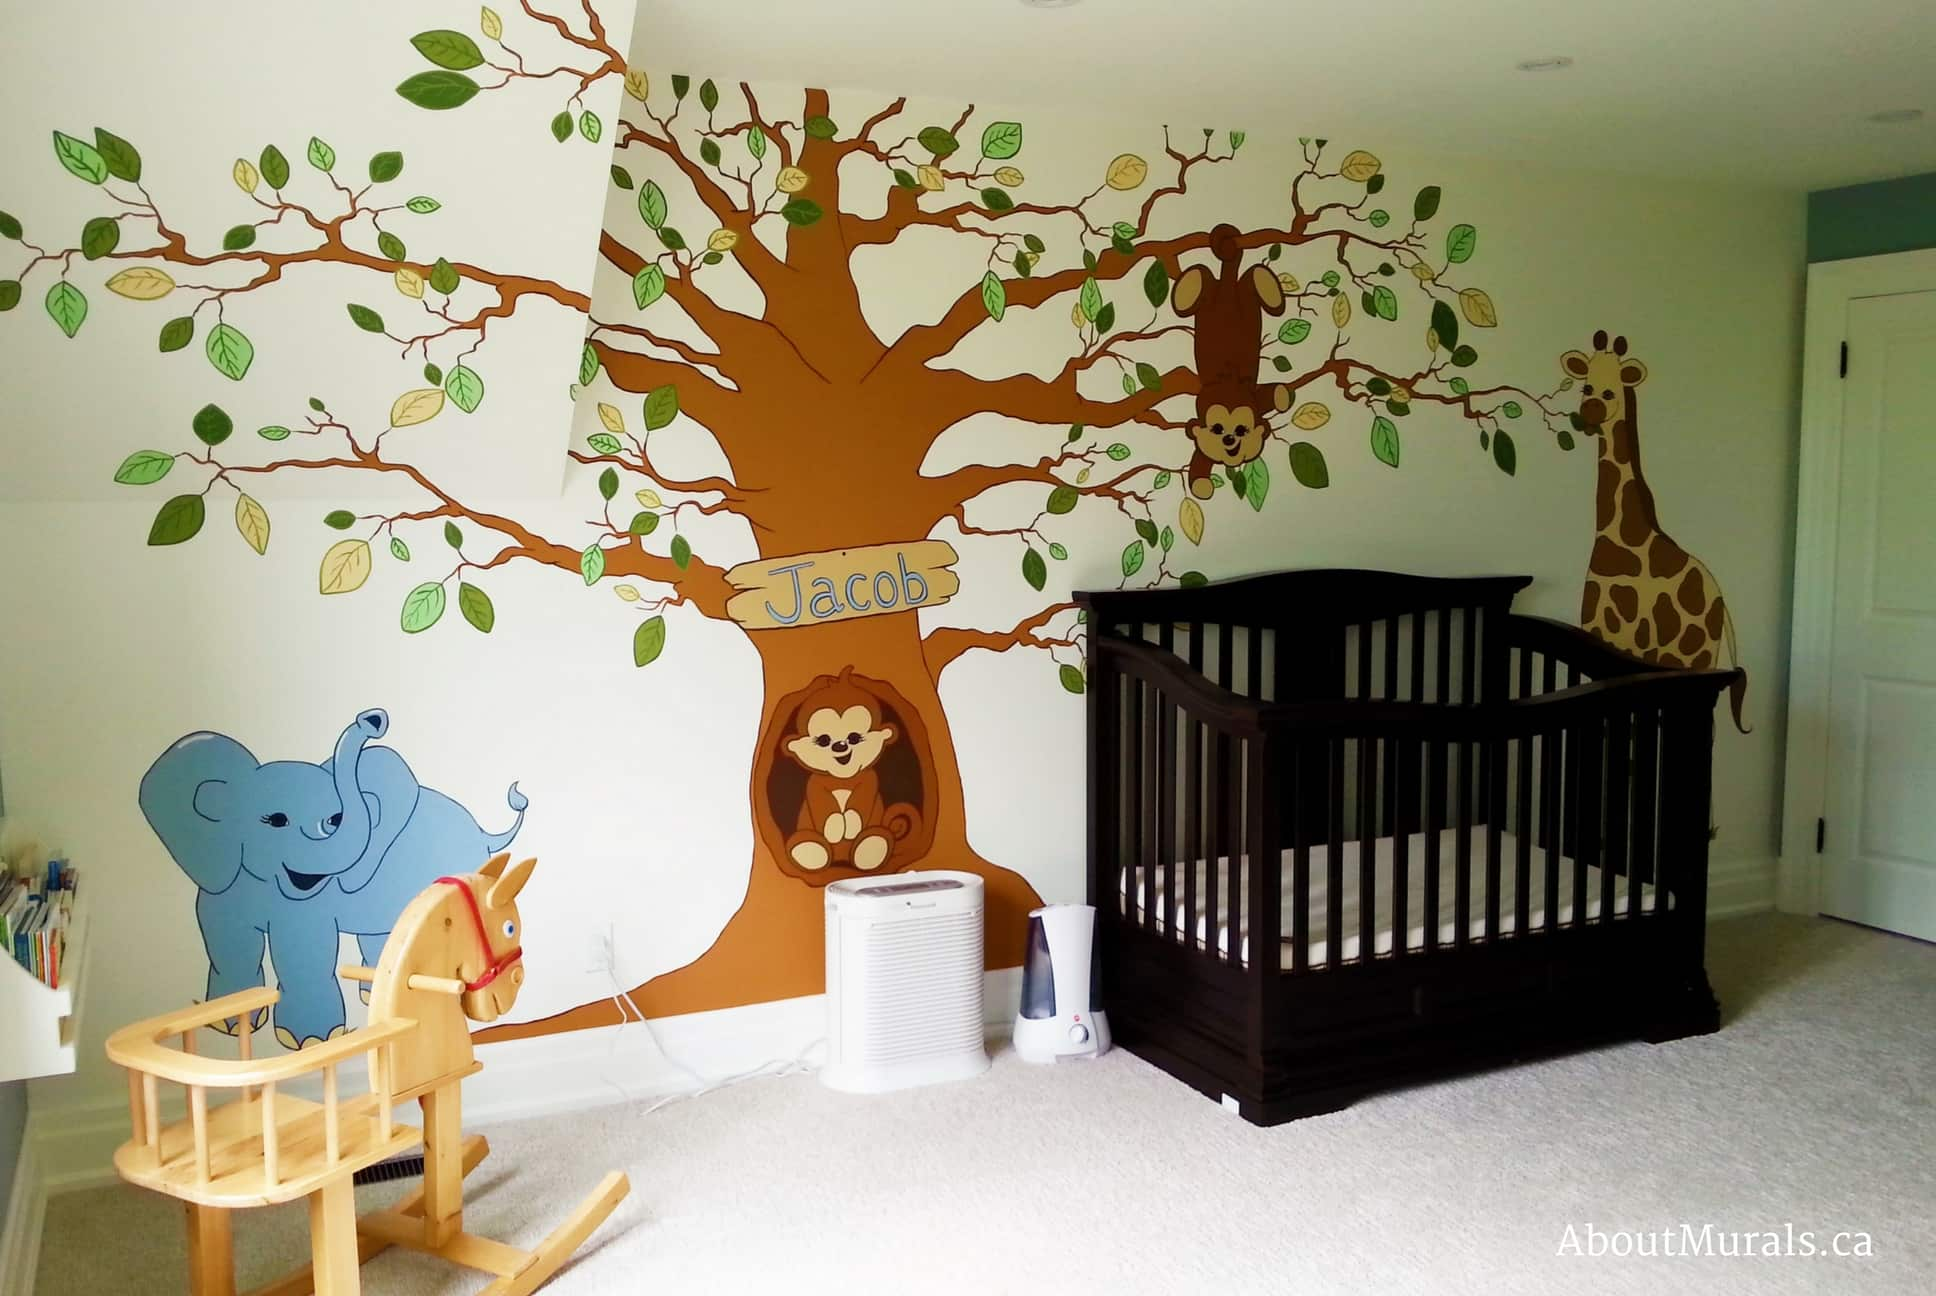 A safari tree mural featuring a tree with an elephant, giraffe and monkeys over a baby crib